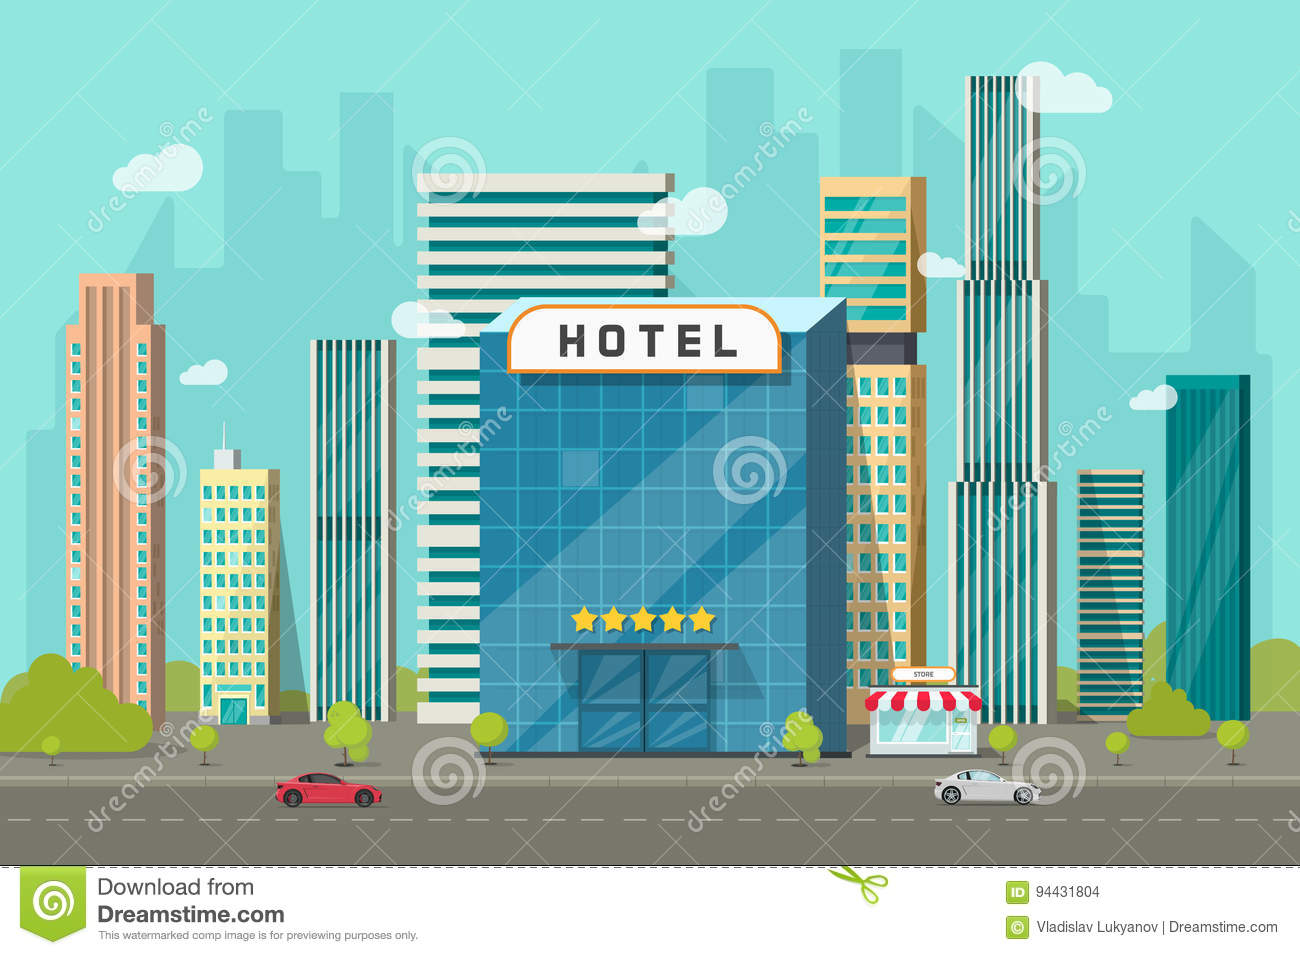 Hotel in the city view vector illustration, flat cartoon hotel building on street road and big skyscraper town landscape